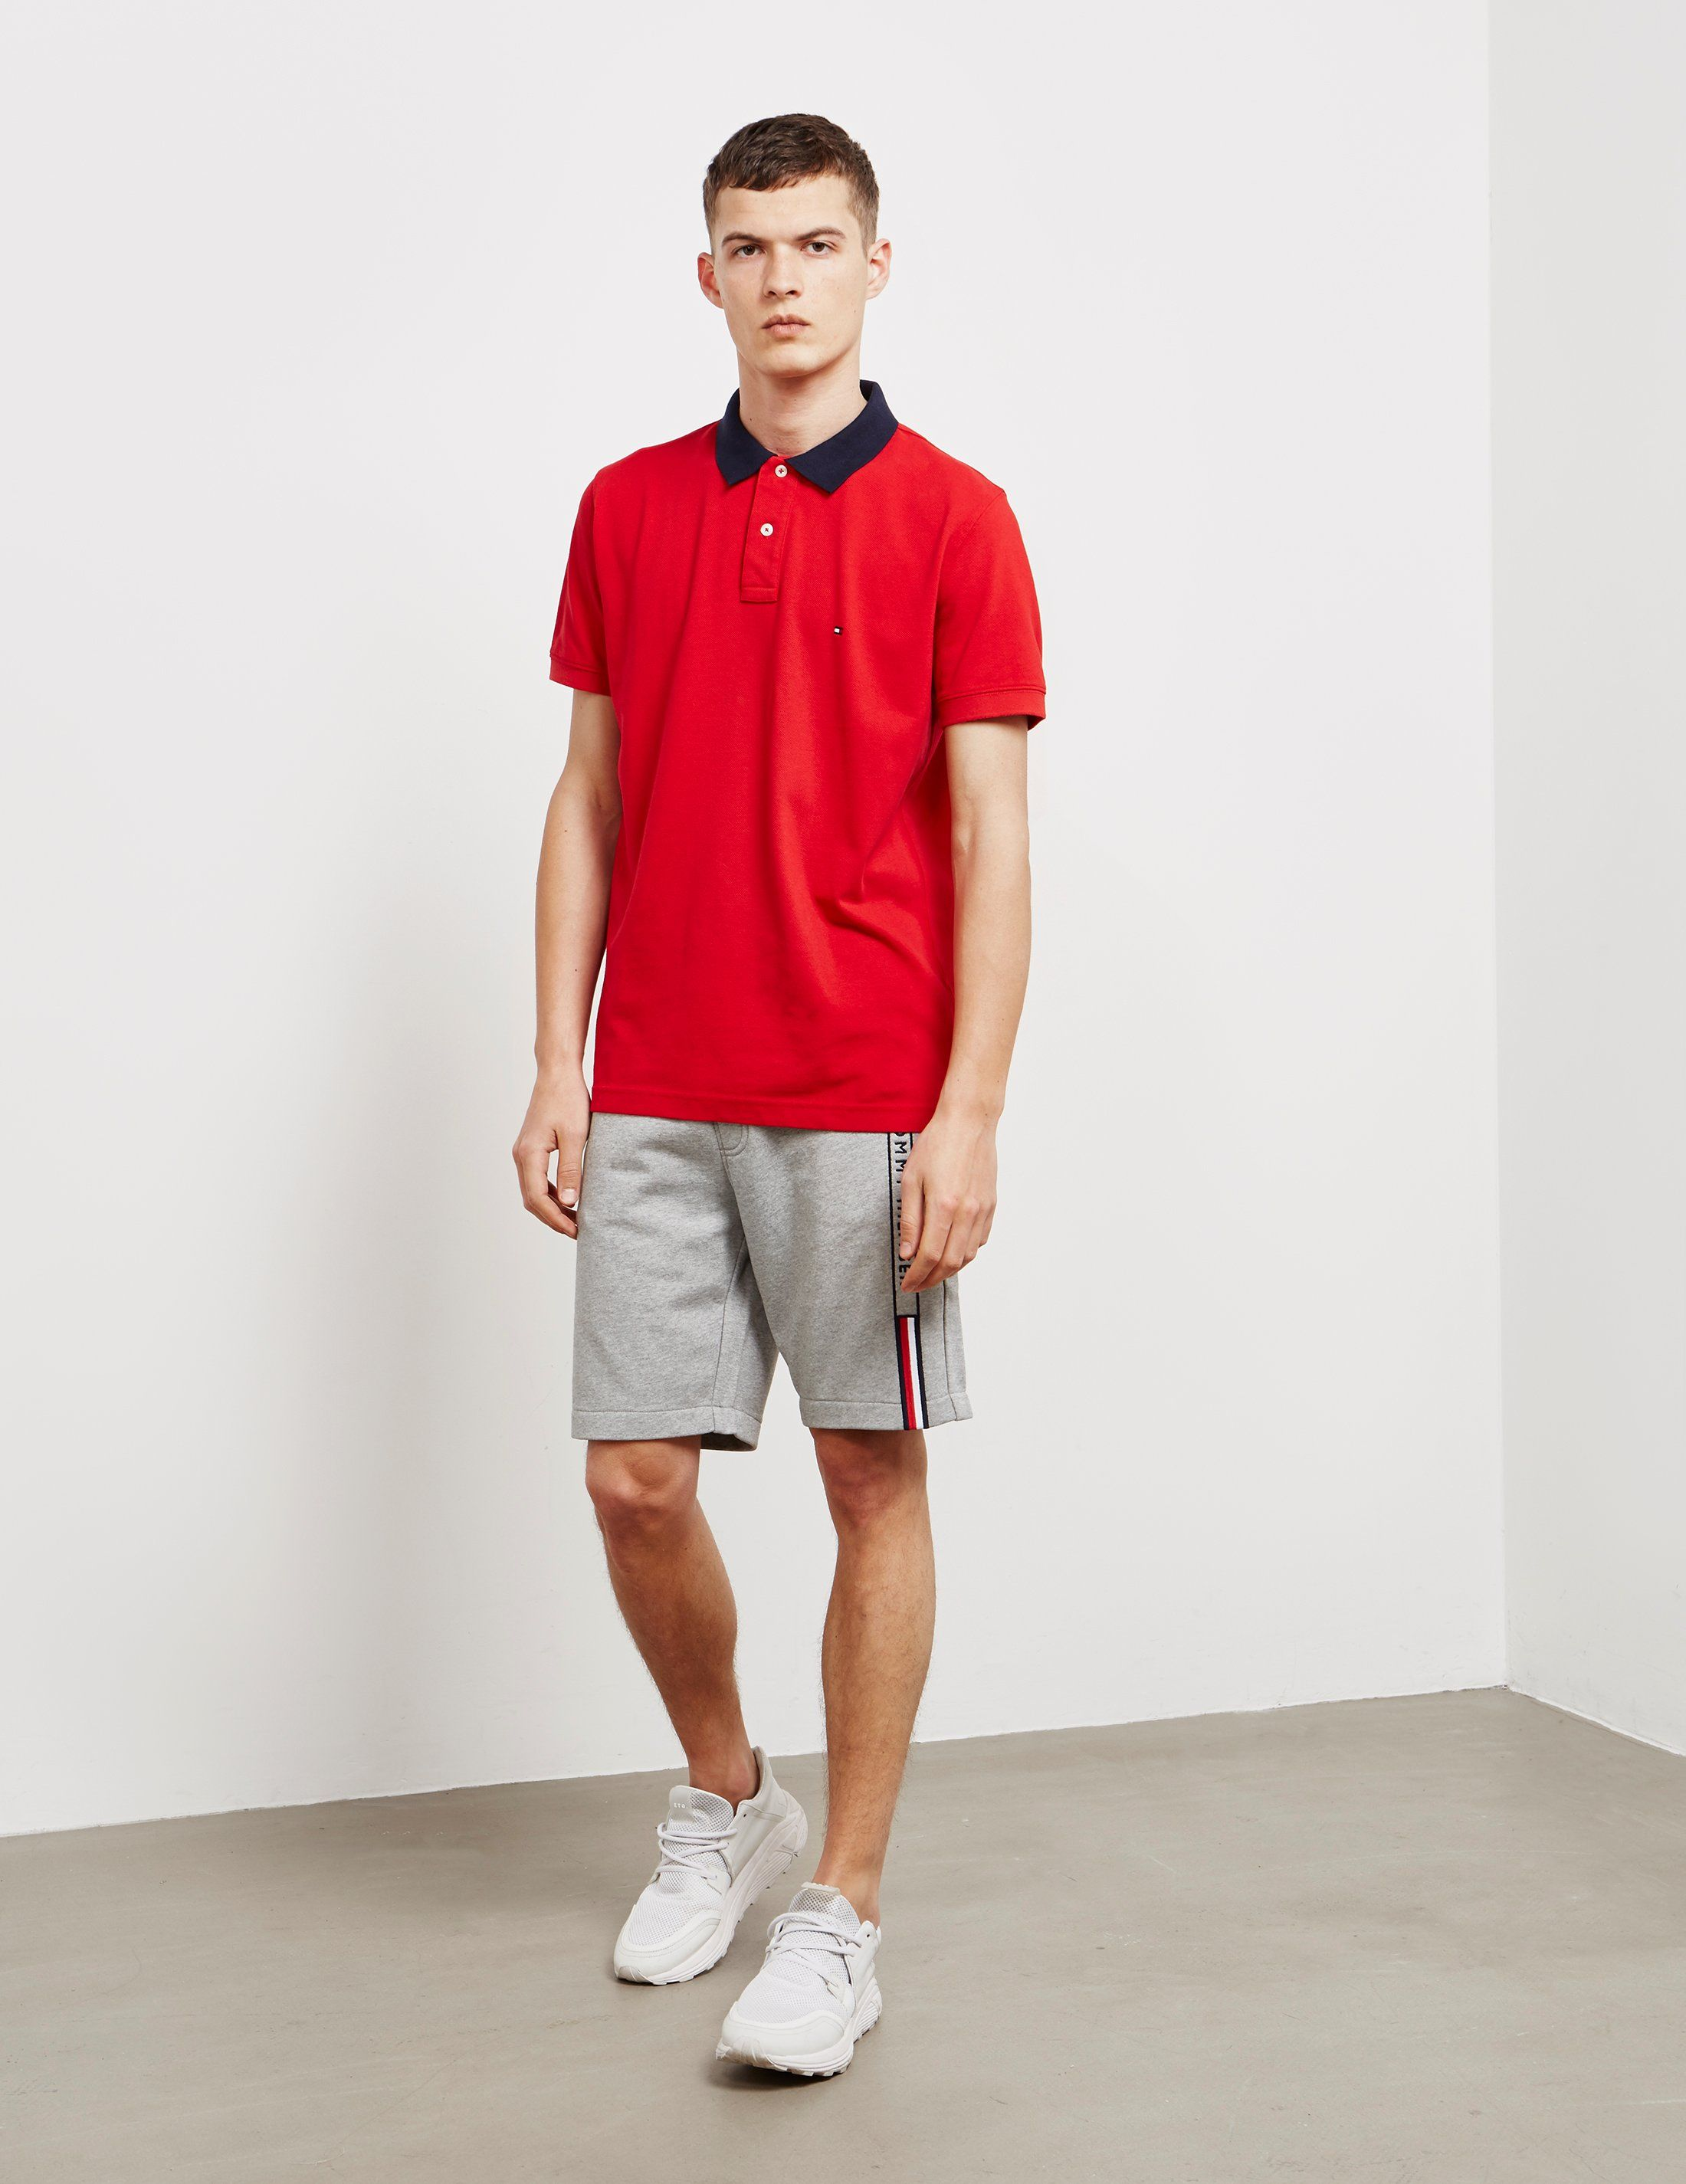 Tommy Hilfiger 1985 Short Sleeve Polo Shirt